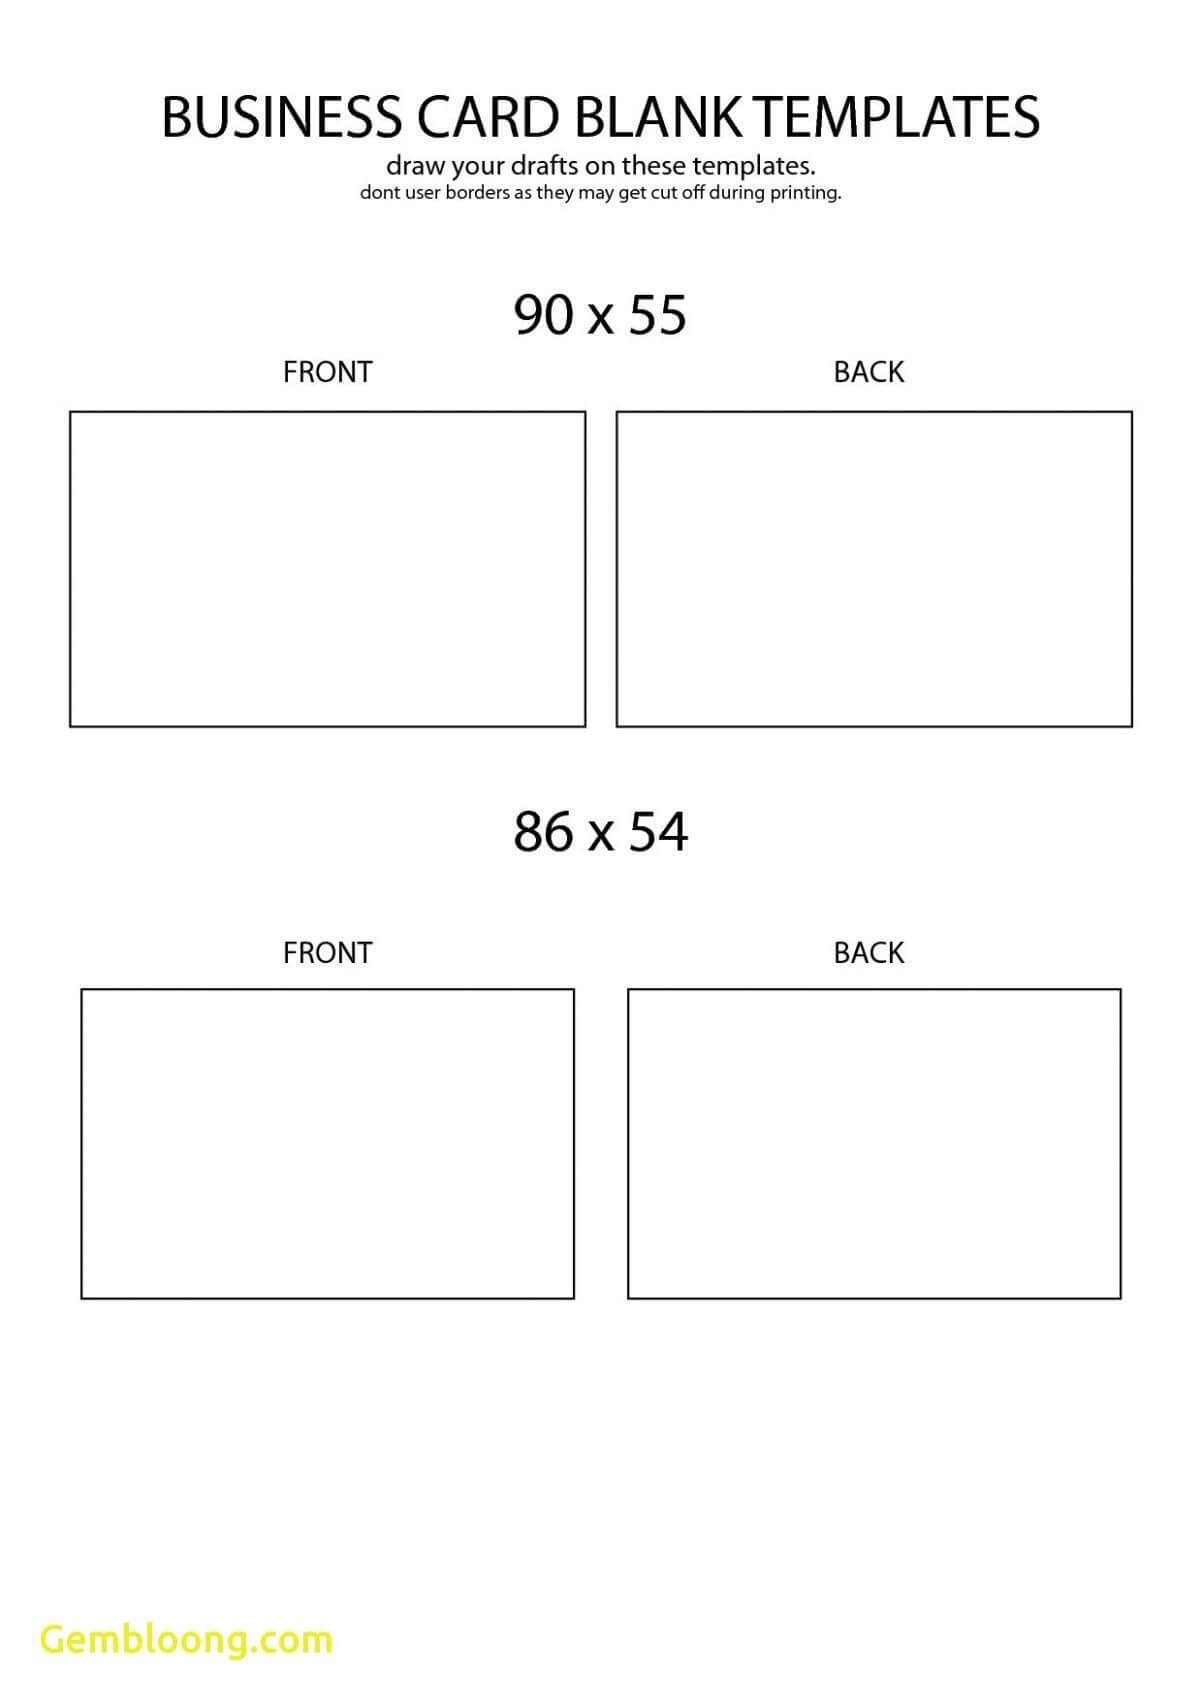 Free Blank Business Card Template Front And Back Design Intended For Word 2013 Business Card Template